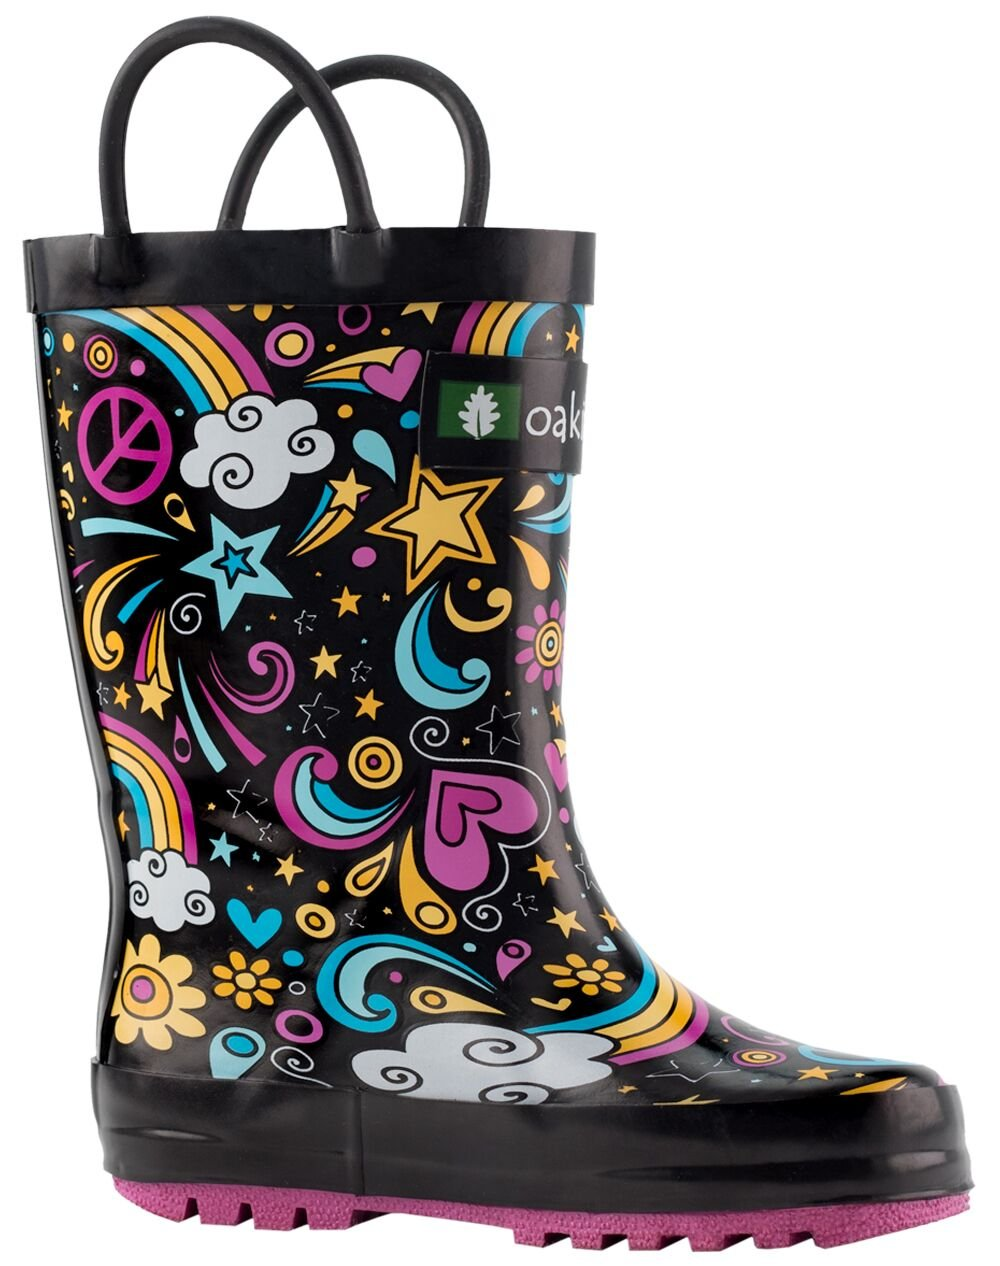 Oakiwear Kids Rubber Rain Boots with Easy-On Handles, Peace, Love & Rainbows, 9T US Toddler, Peace